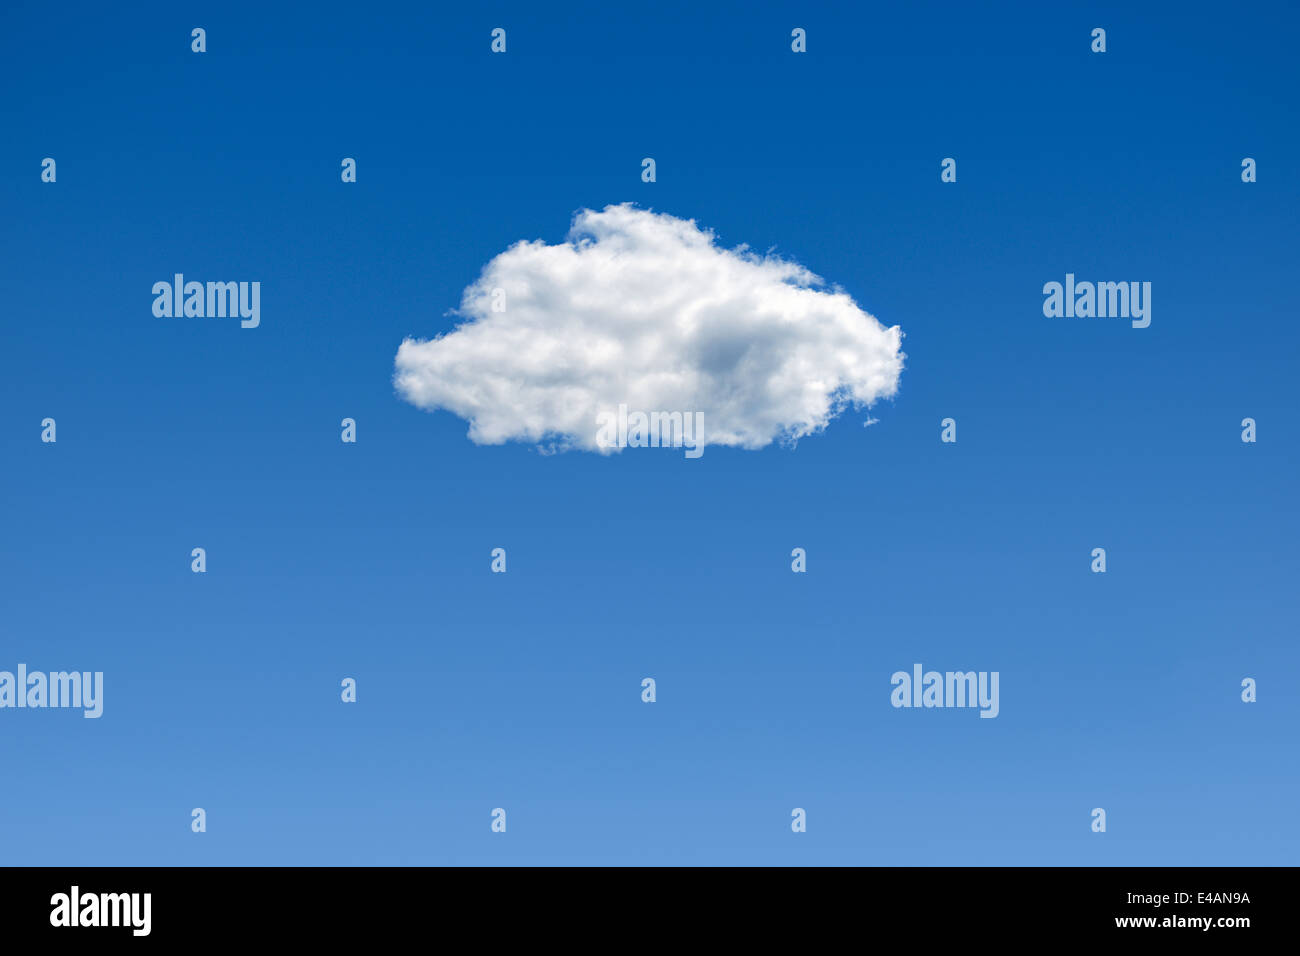 Cloud in a Blue Sky. - Stock Image